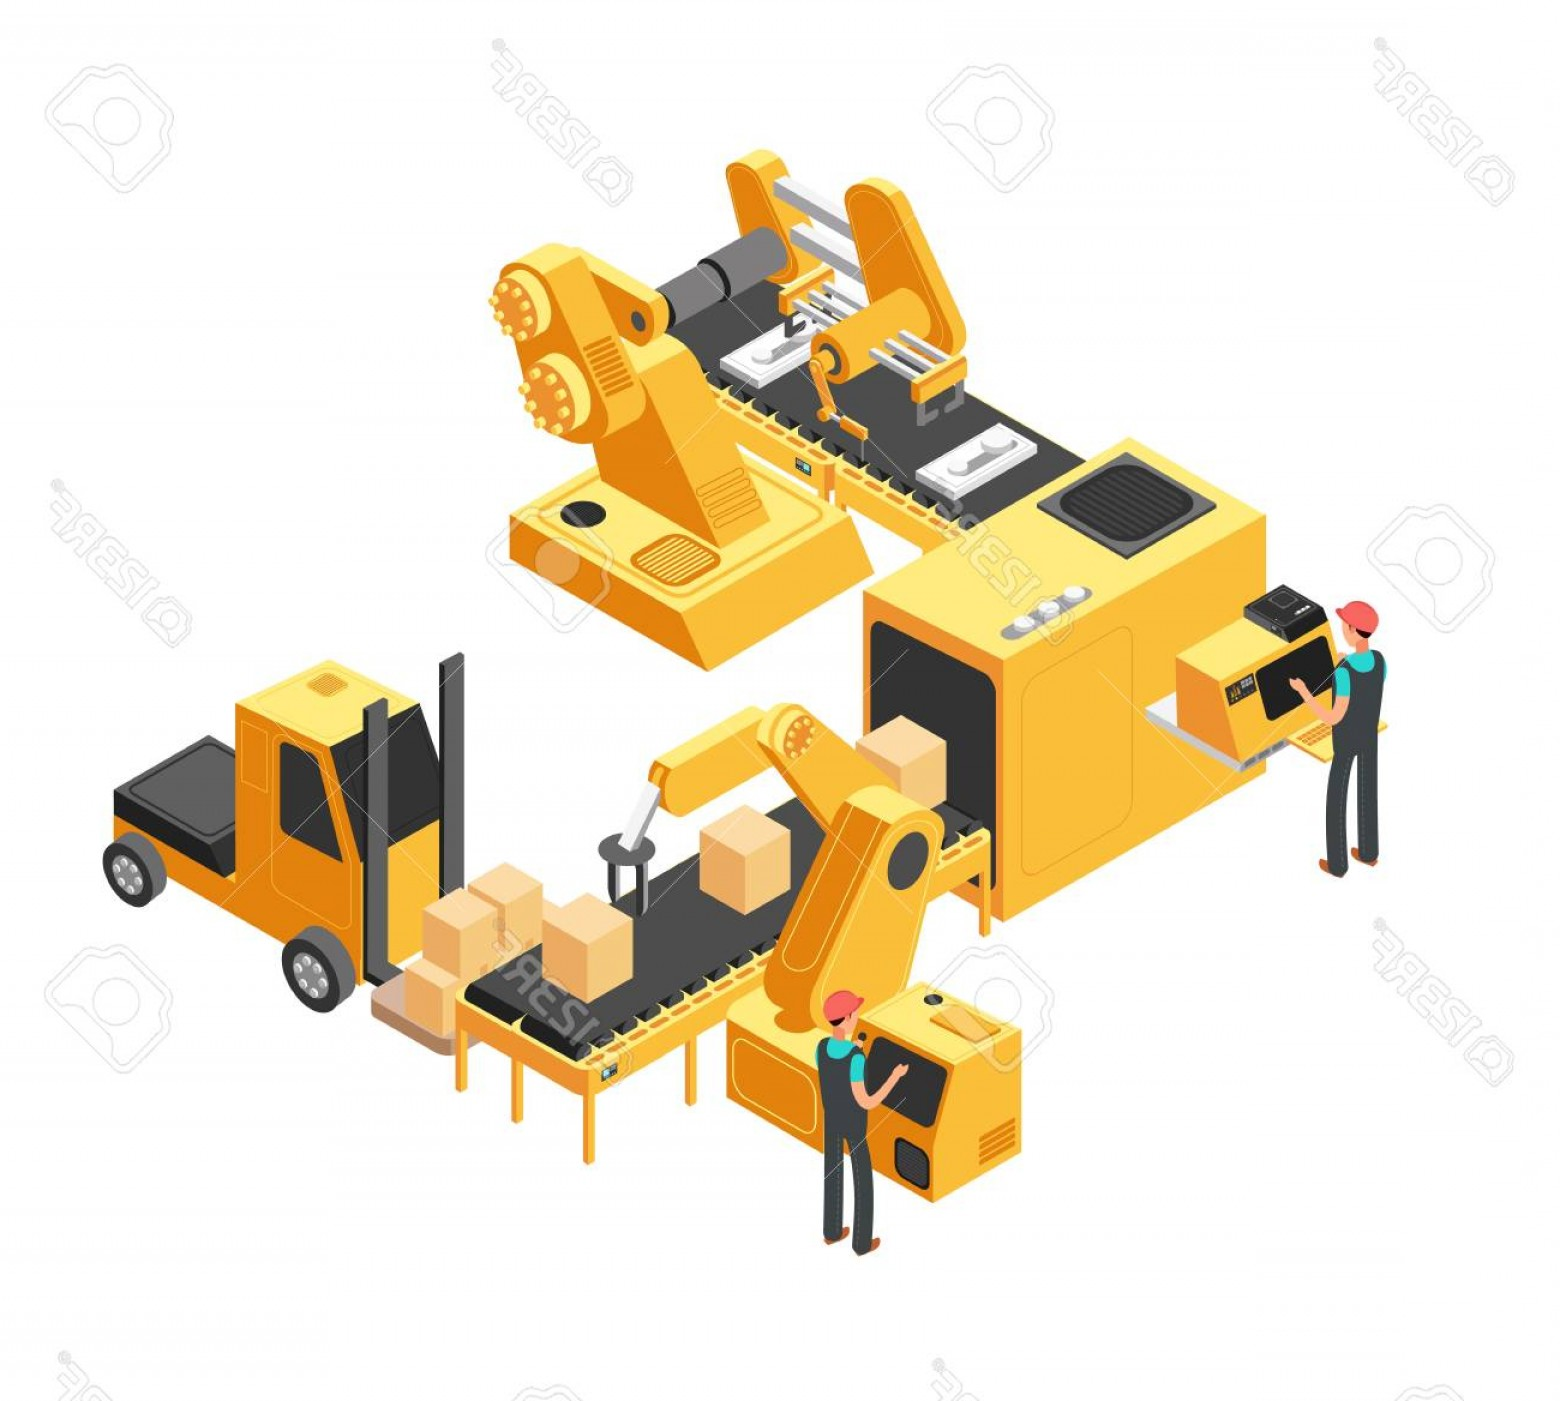 Vector Manufacturing Machine: Photostock Vector Industrial Manufacturing Conveyor Line With Packaging Equipment And Factory Workers D Isometric Vec